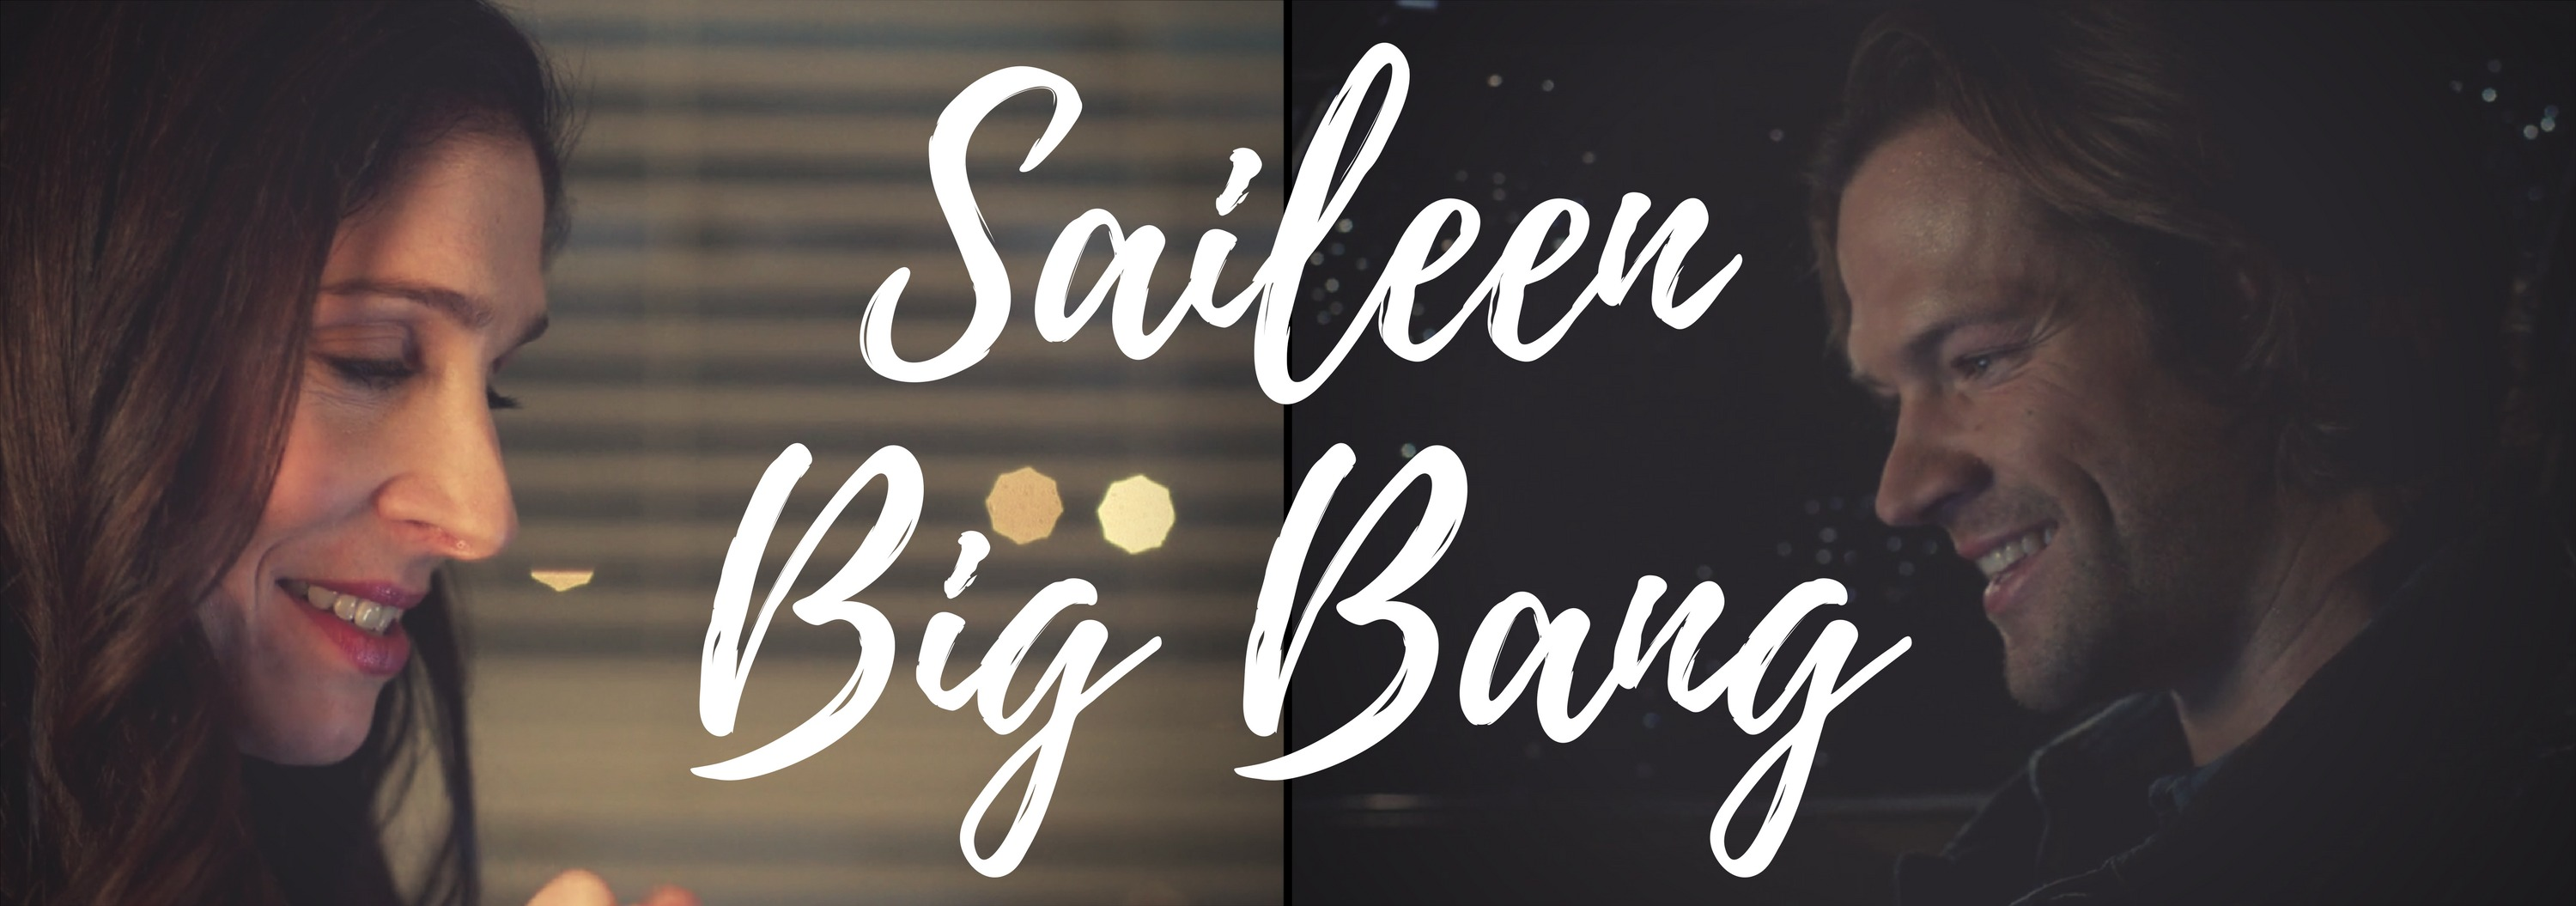 Saileen Big Bang